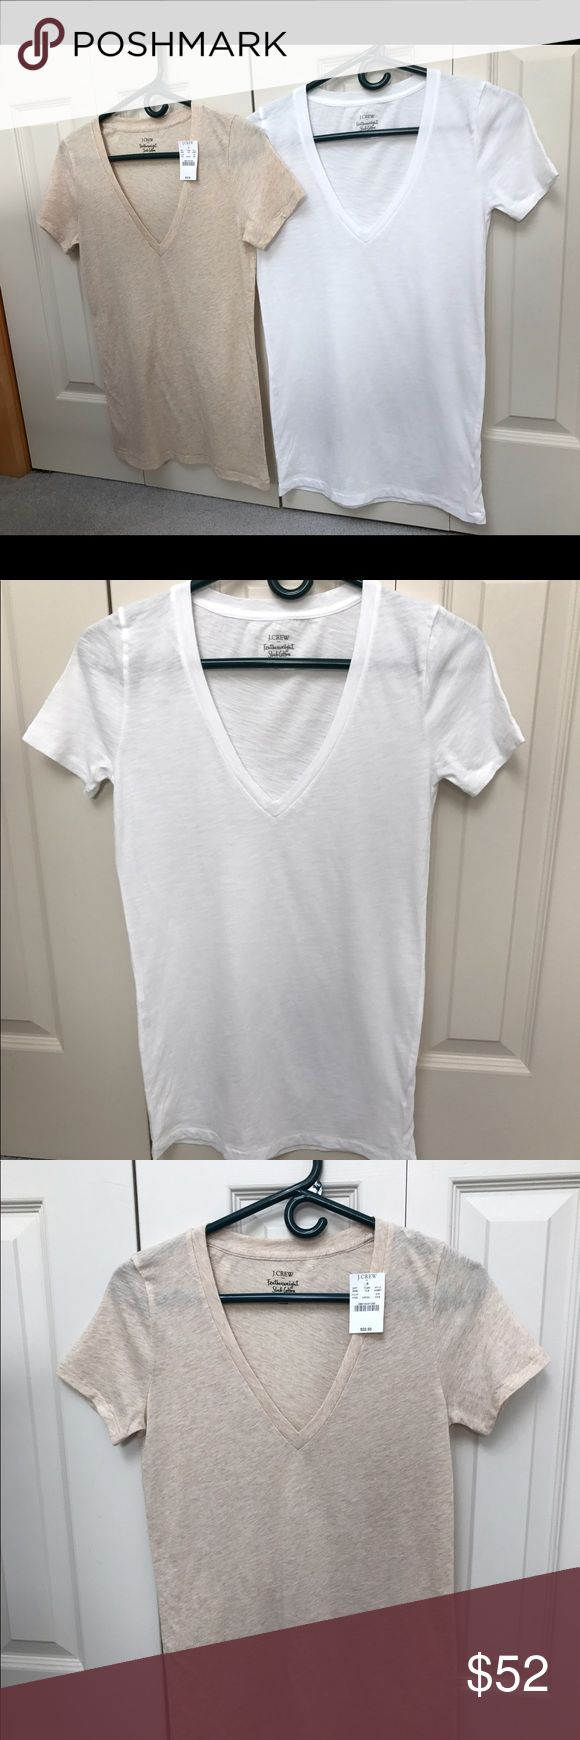 Bundle of TWO J Crew T-Shirts, XXS. Bundle of TWO J Crew T-Shirts, XXS. One tan, XXS, featherweight slub cotton, NWT and one white, XXS, featherweight slub cotton, worn one time. Both for $25. NO TRADES. J. Crew Tops Tees - Short Sleeve